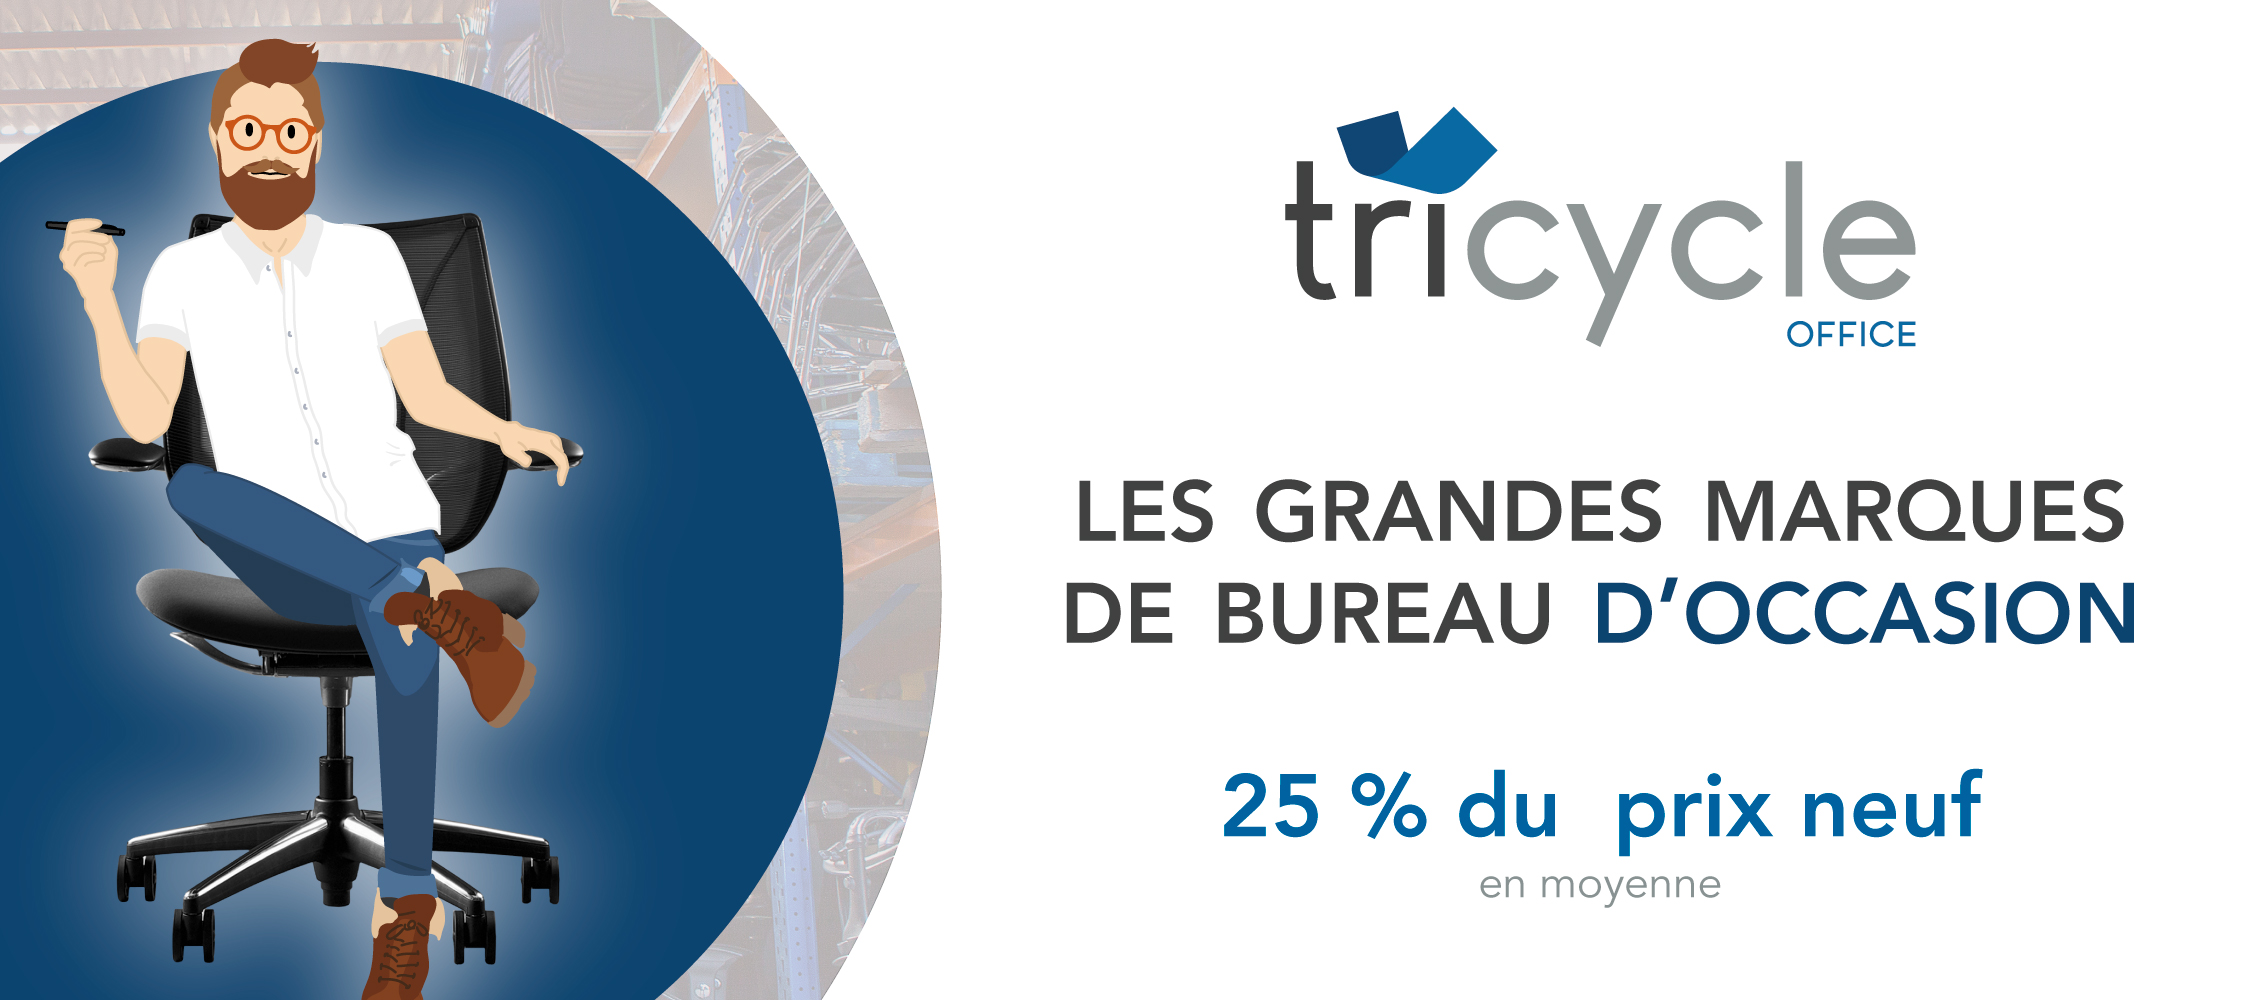 Baticycle-reemploi-matériaux-de-construction-BTP-occasion-Tricycle-Office-mobilier-bureau